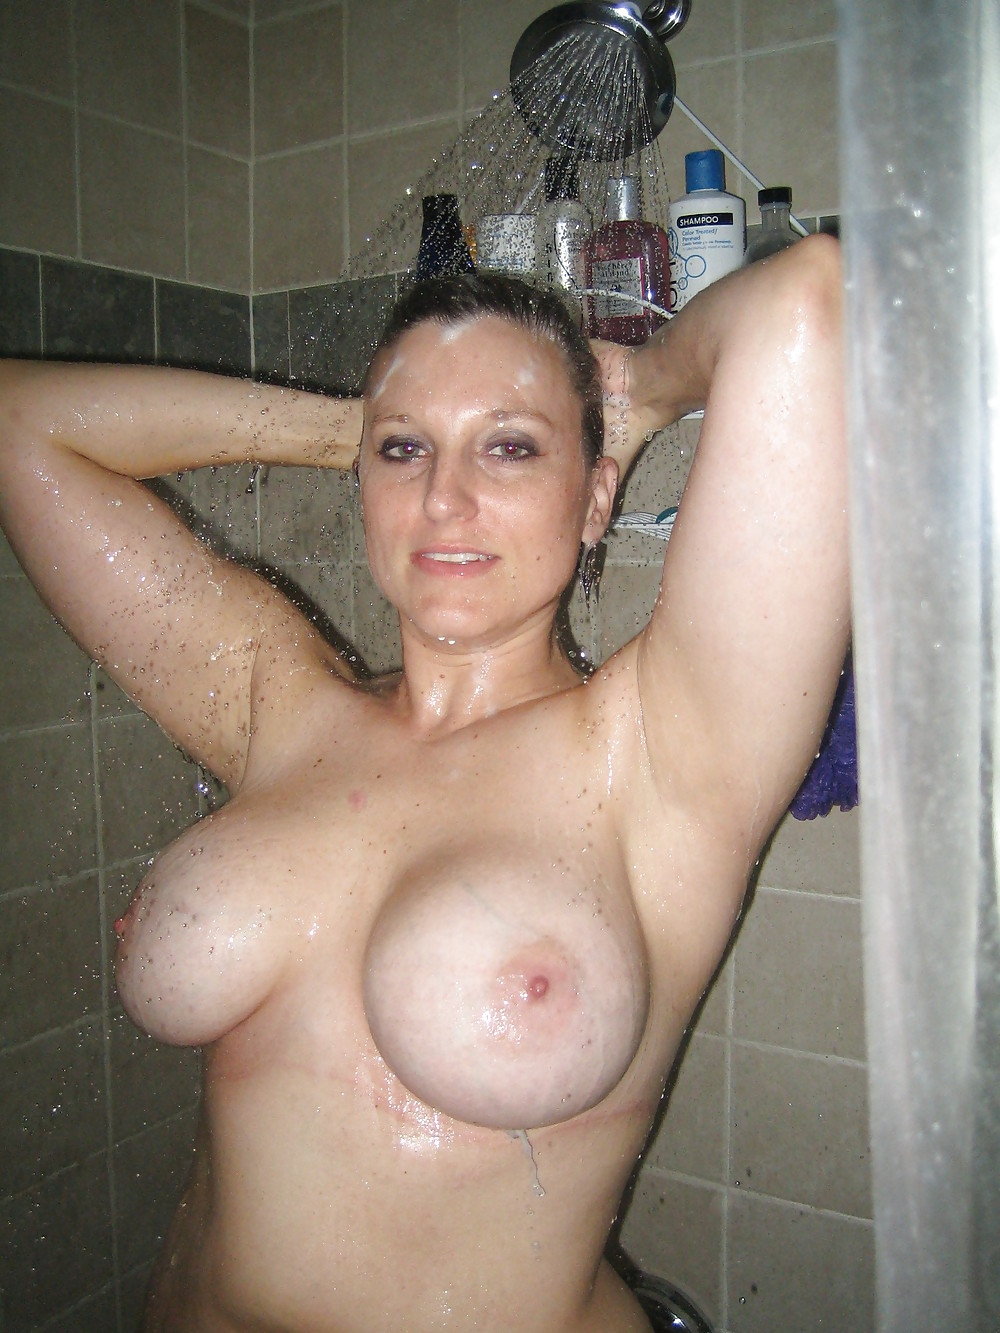 Hot milf fucks young guy in the shower nude scenes